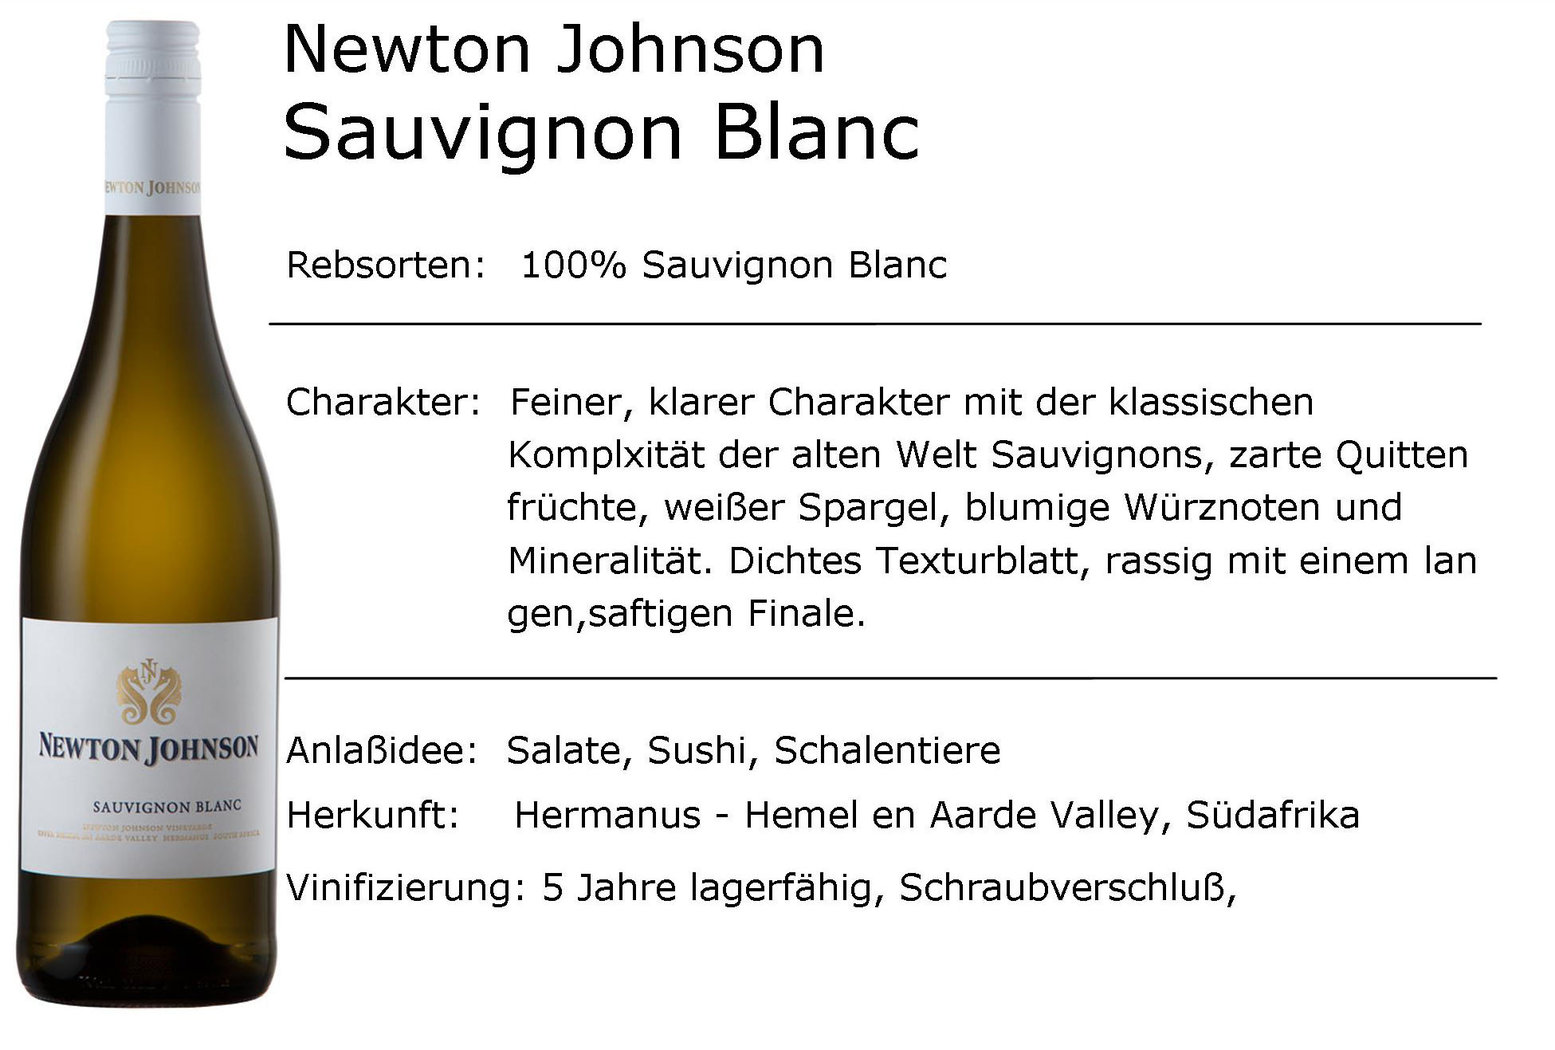 Newton Johnson Sauvignon Blanc 2019